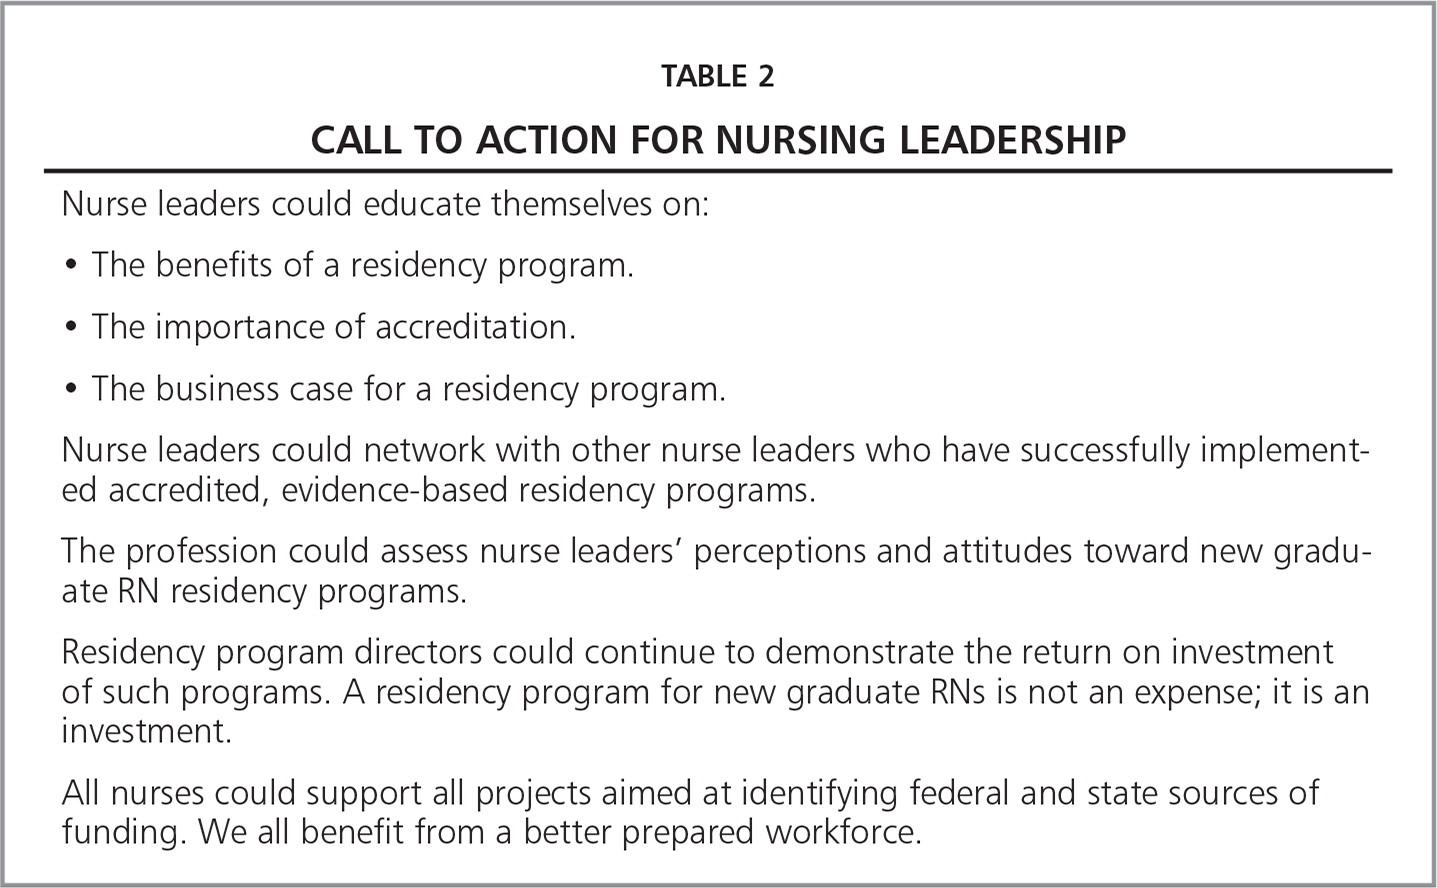 Call to Action for Nursing Leadership